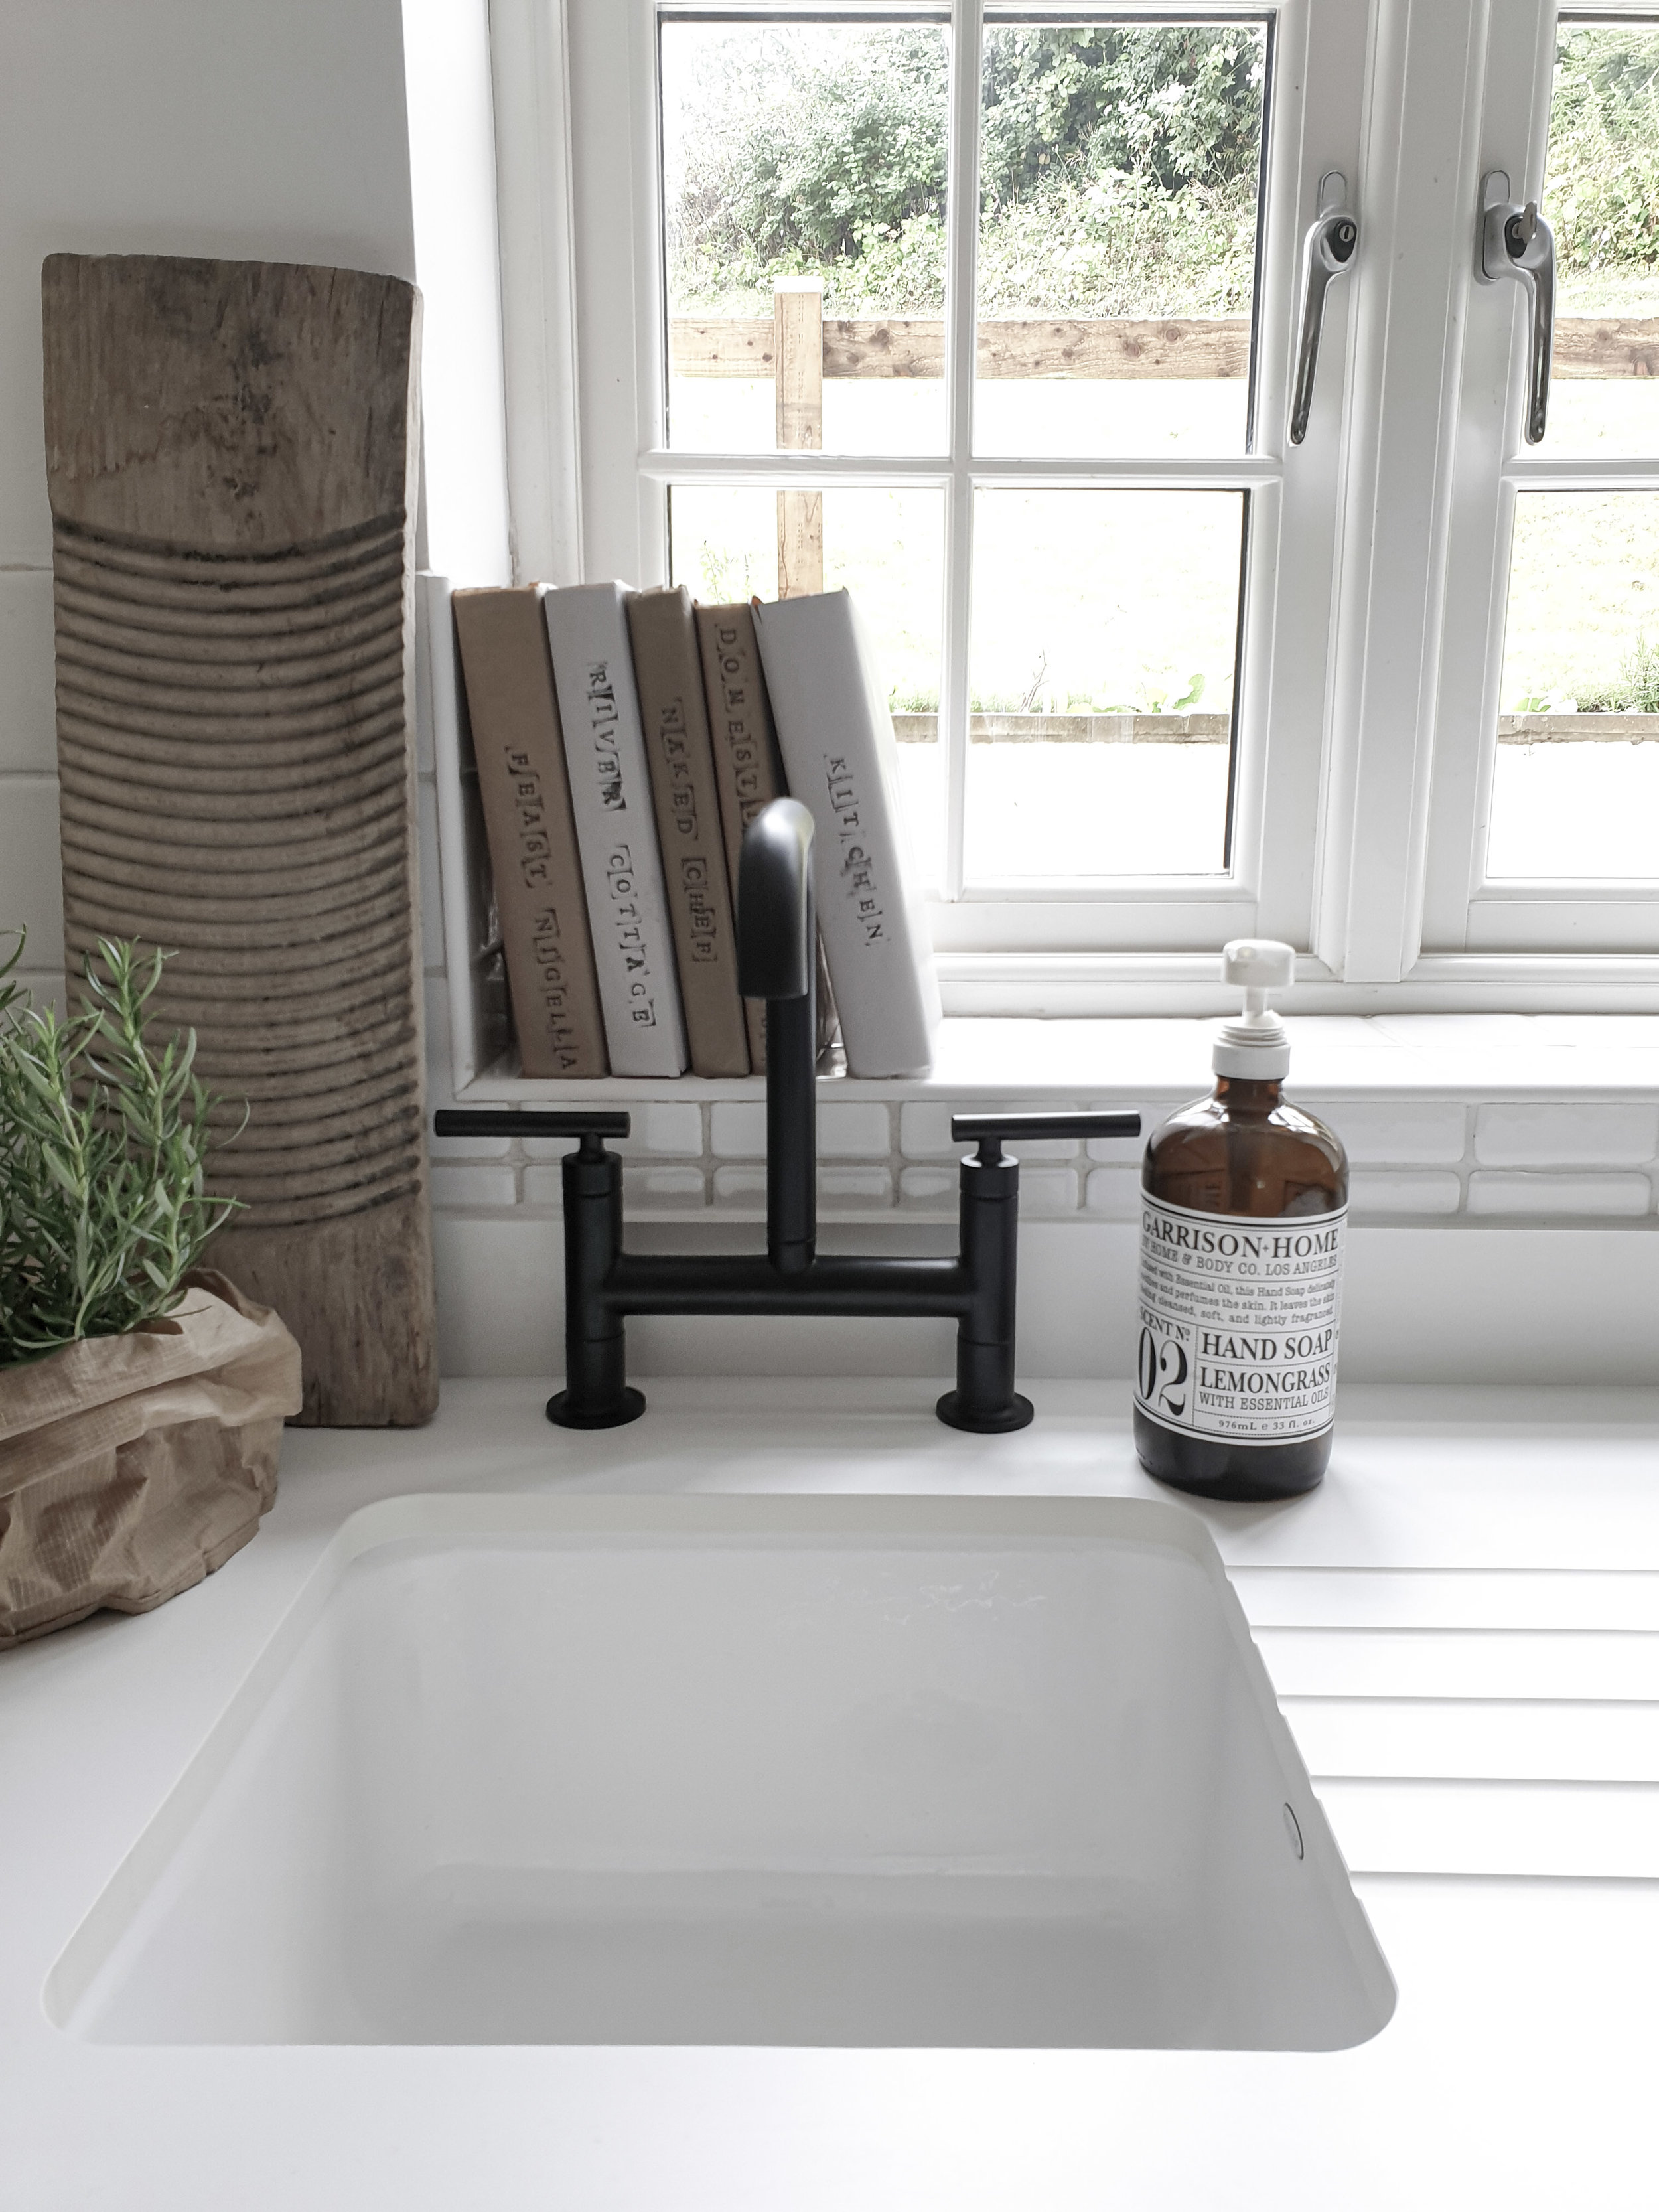 Here the old washboard used as a pot stand provides texture and contrast next to the modern black tap by Kohler.